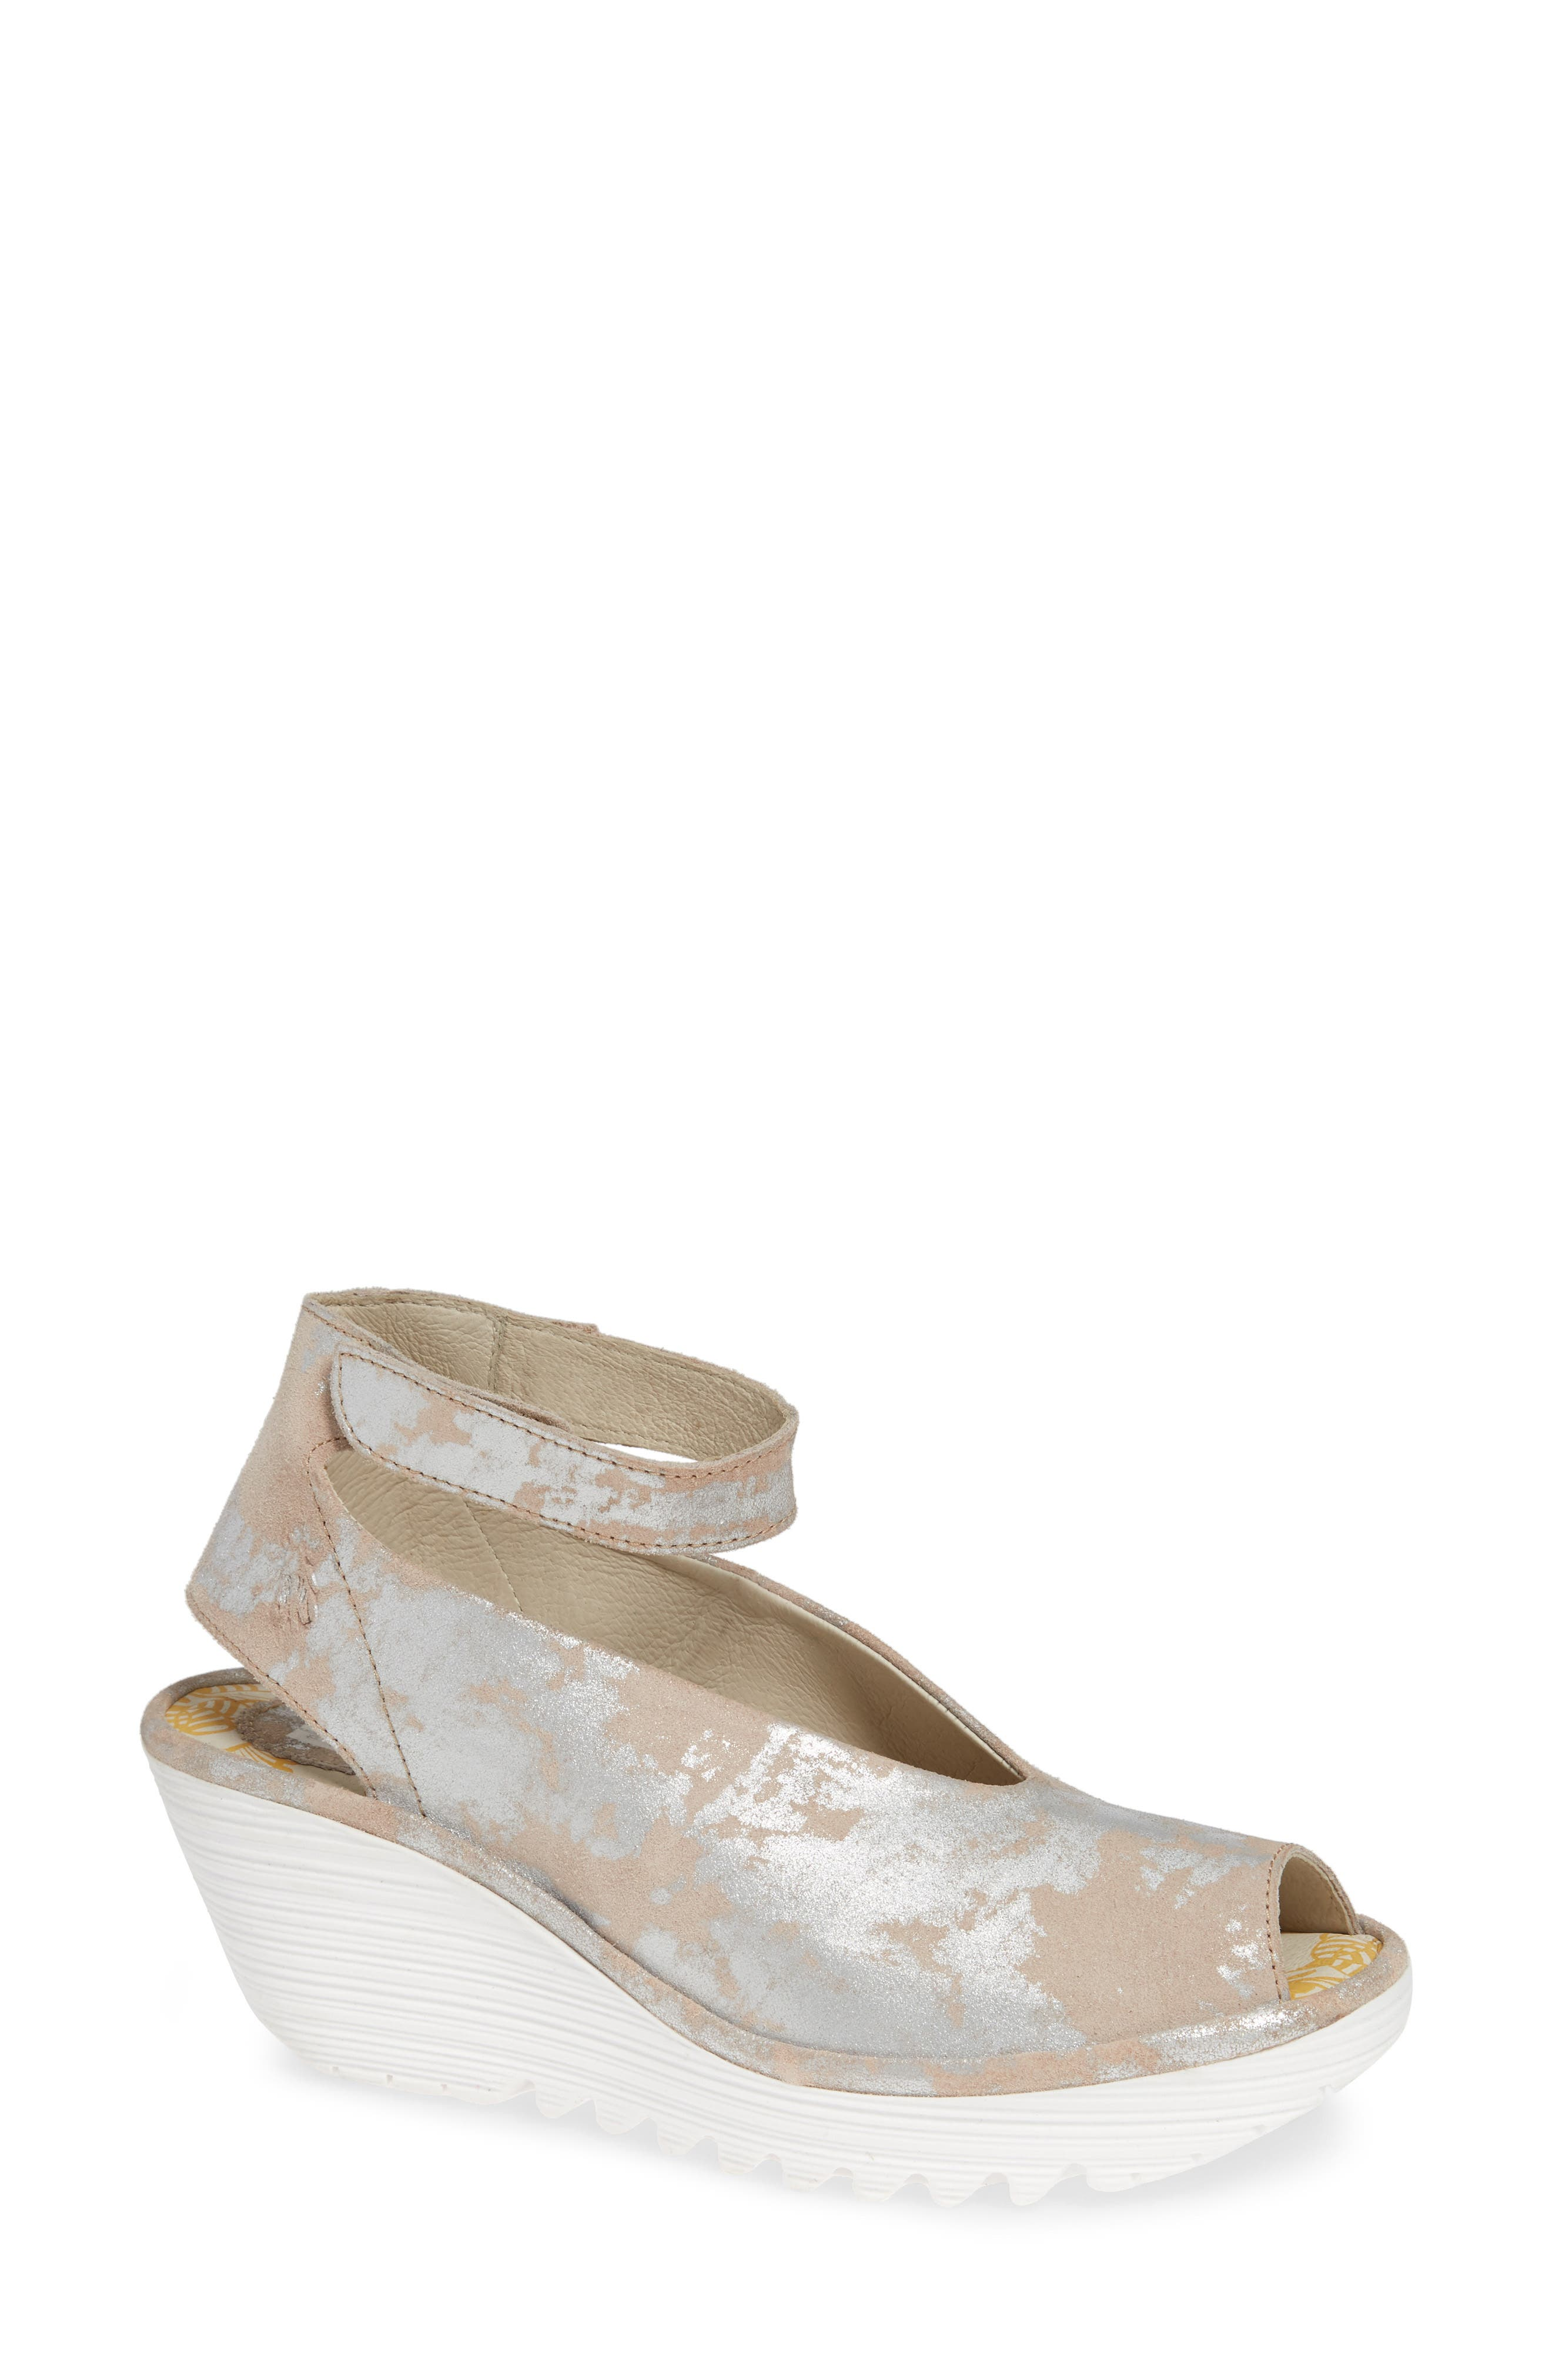 7856424bf70 Women s Fly London Shoes